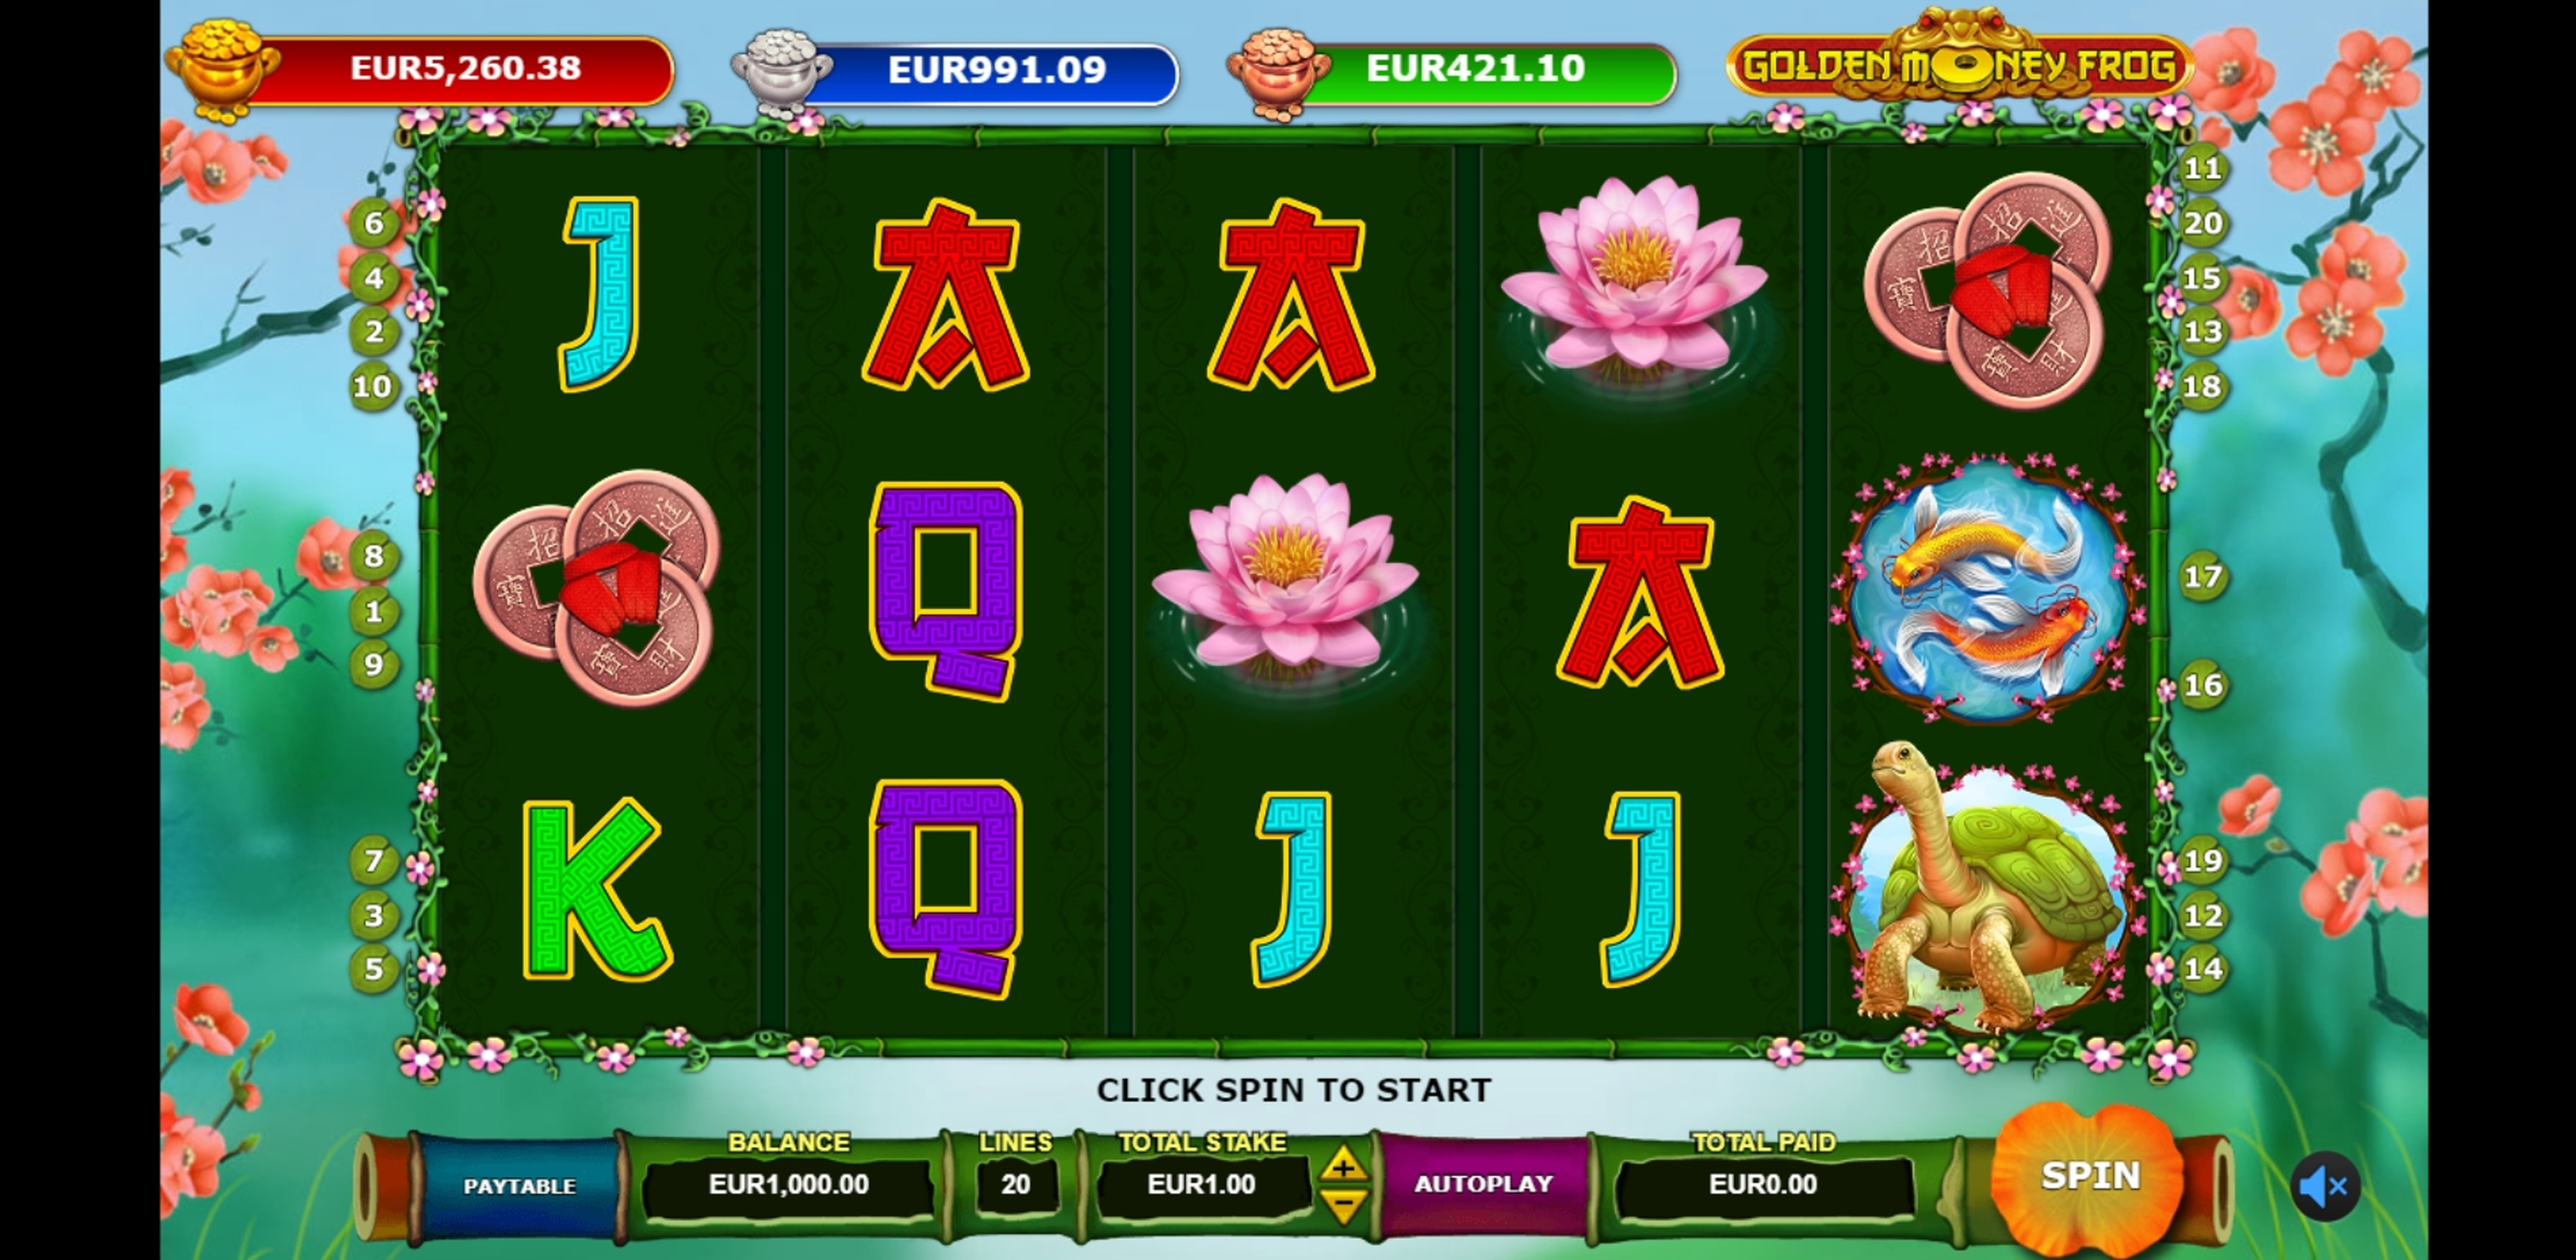 Reels in Golden Money Frog Slot Game by Sigma Gaming